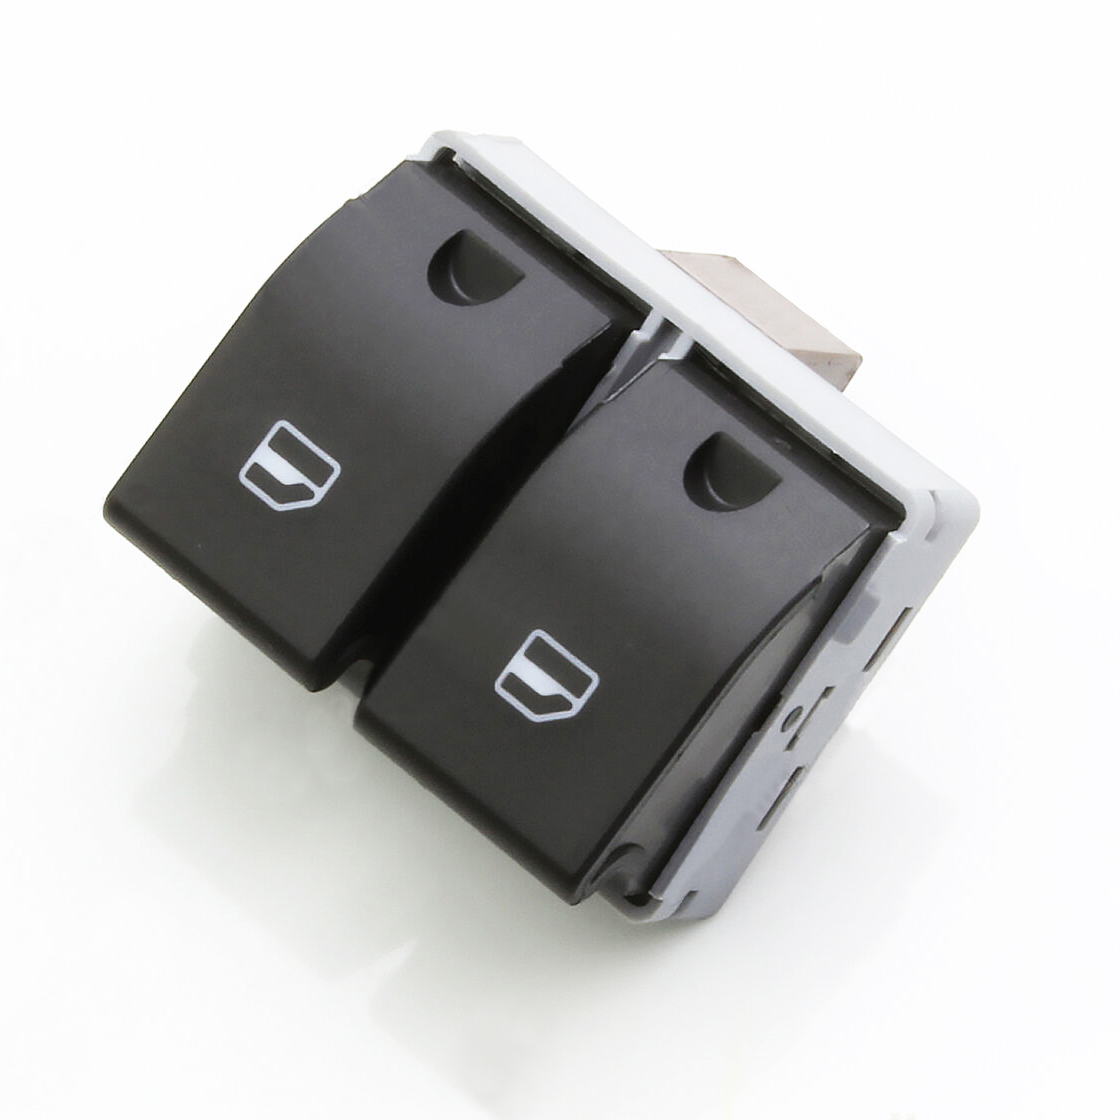 Wotefusi Window Lifter Switch Control Fit For Volkswagen POLO 9N 2001-2009 Hatchback [QPA613]